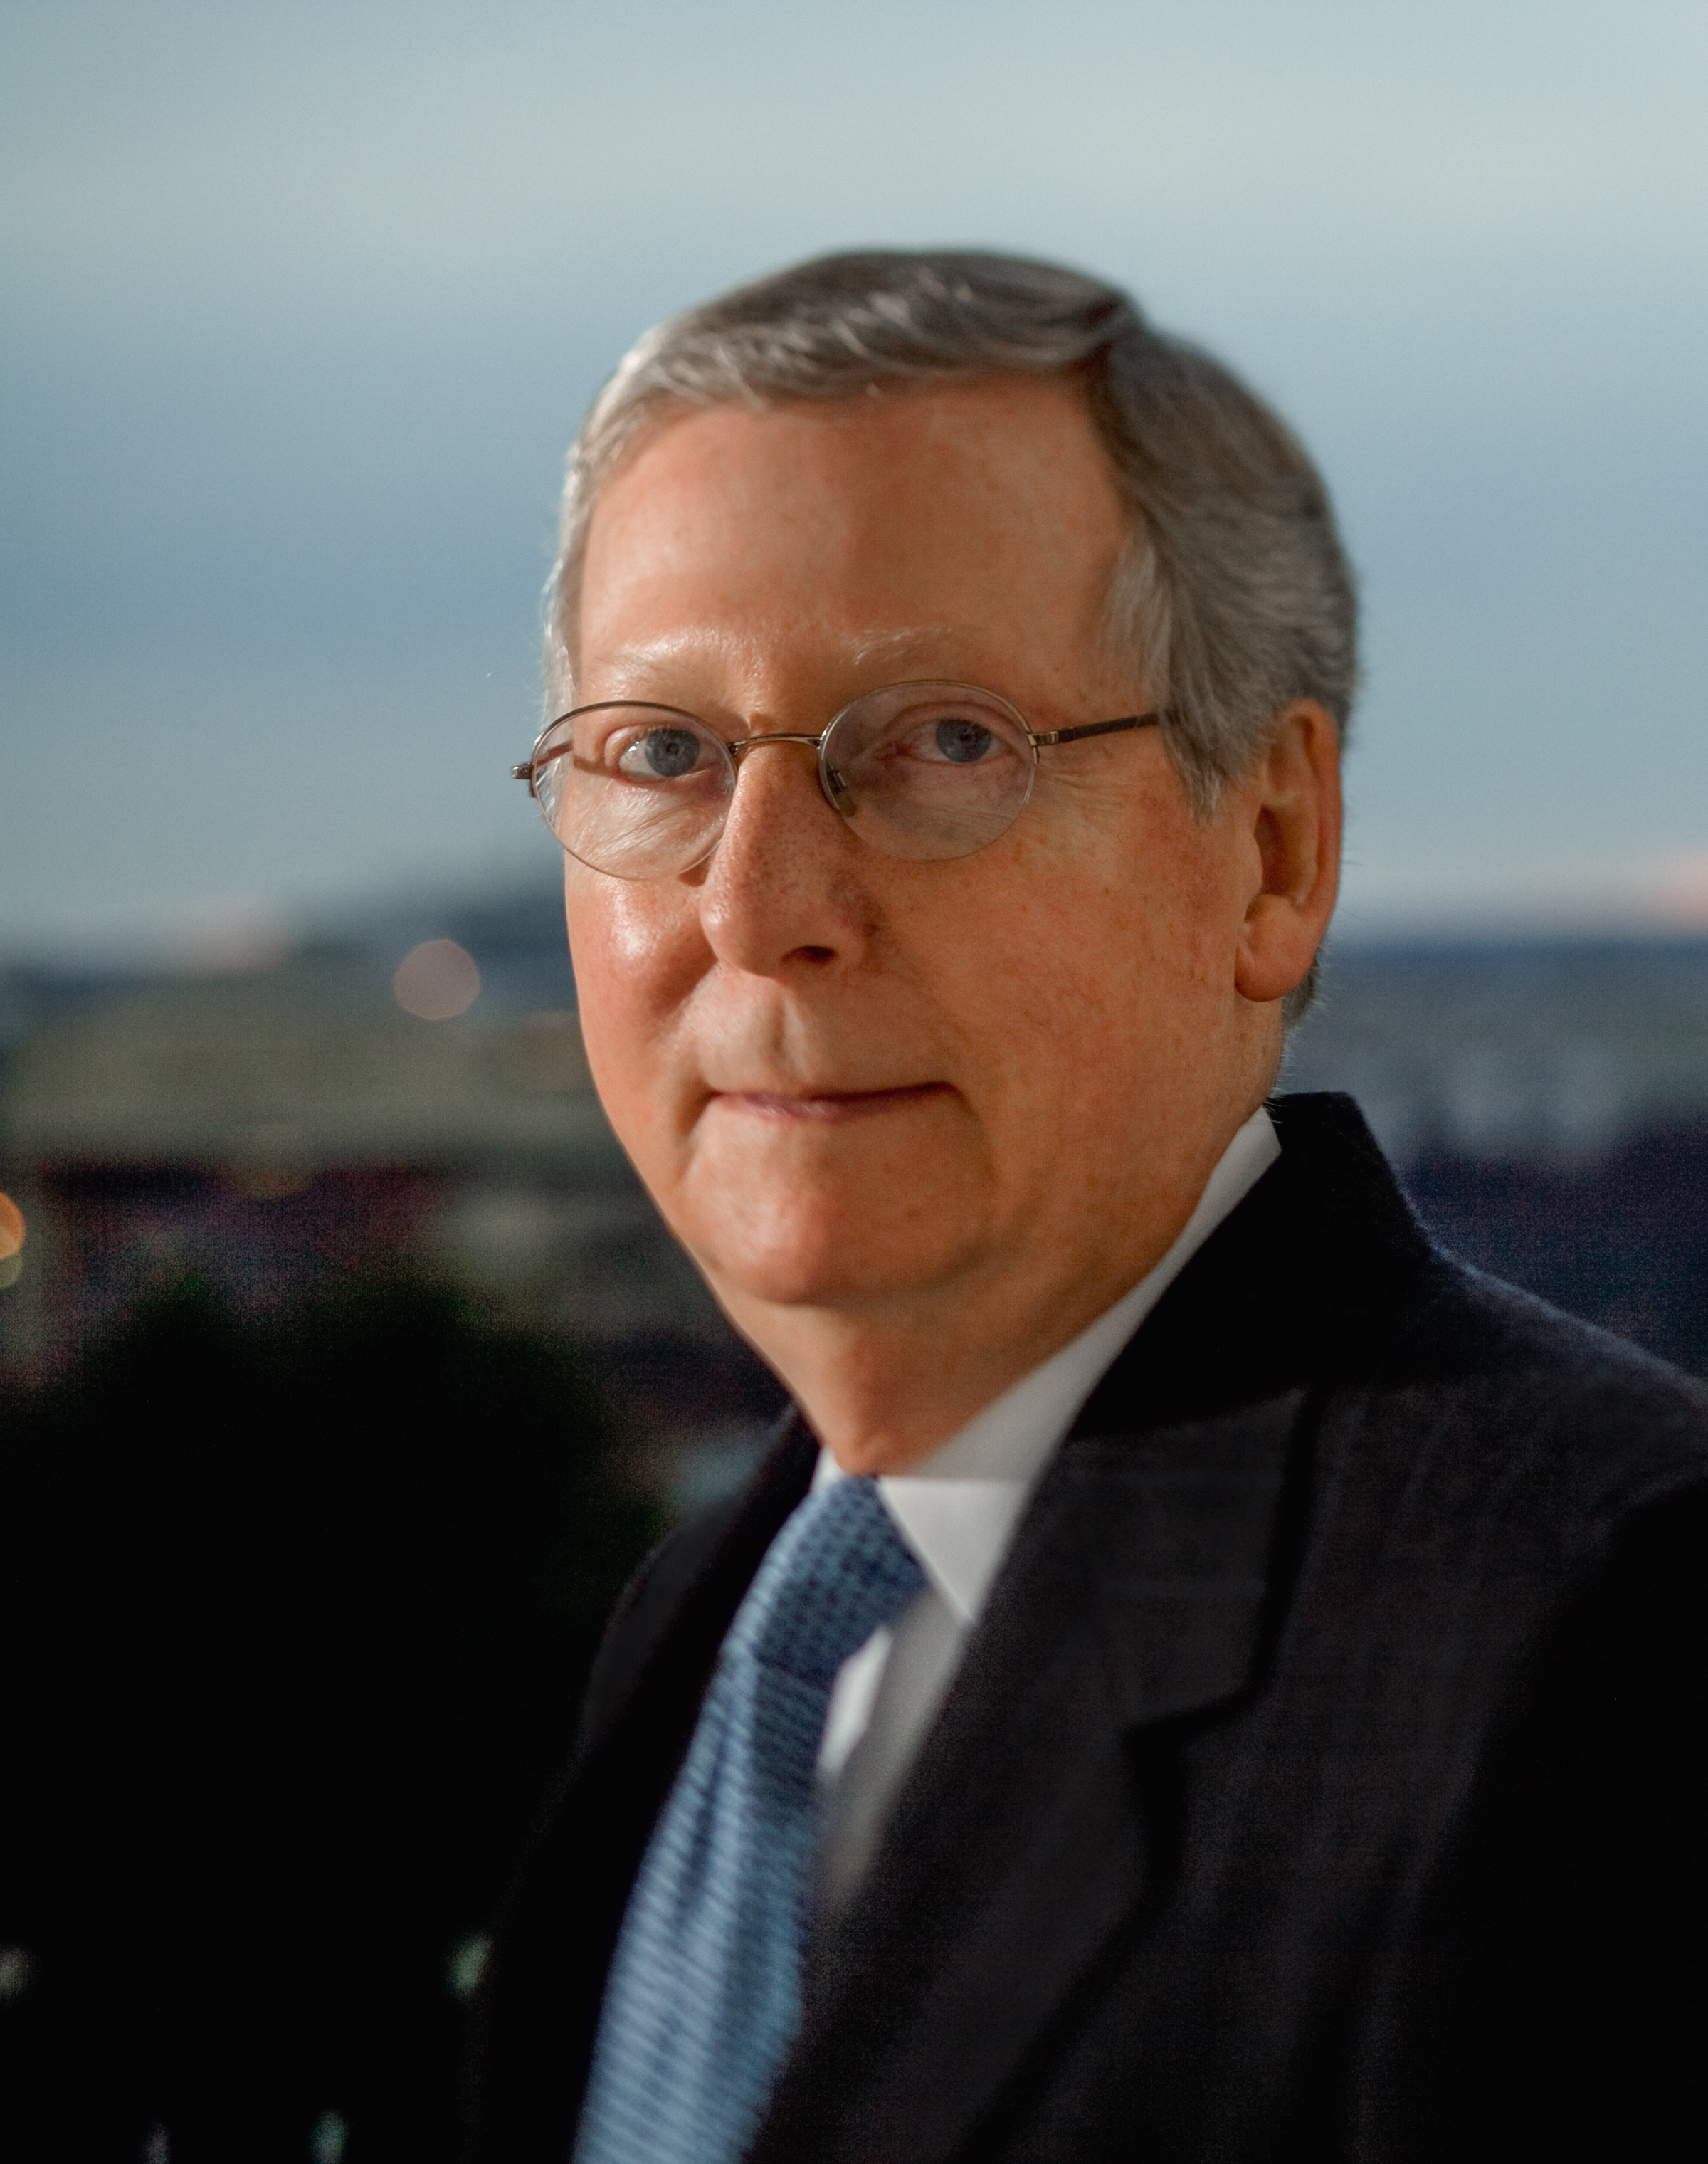 Courtesy: CNN   Sen. Mitch McConnell, (R) Kentucky, candidate for re-election to U.S. Senate in 2014. Official portrait from Mitch McConnell U.S. Senate office.